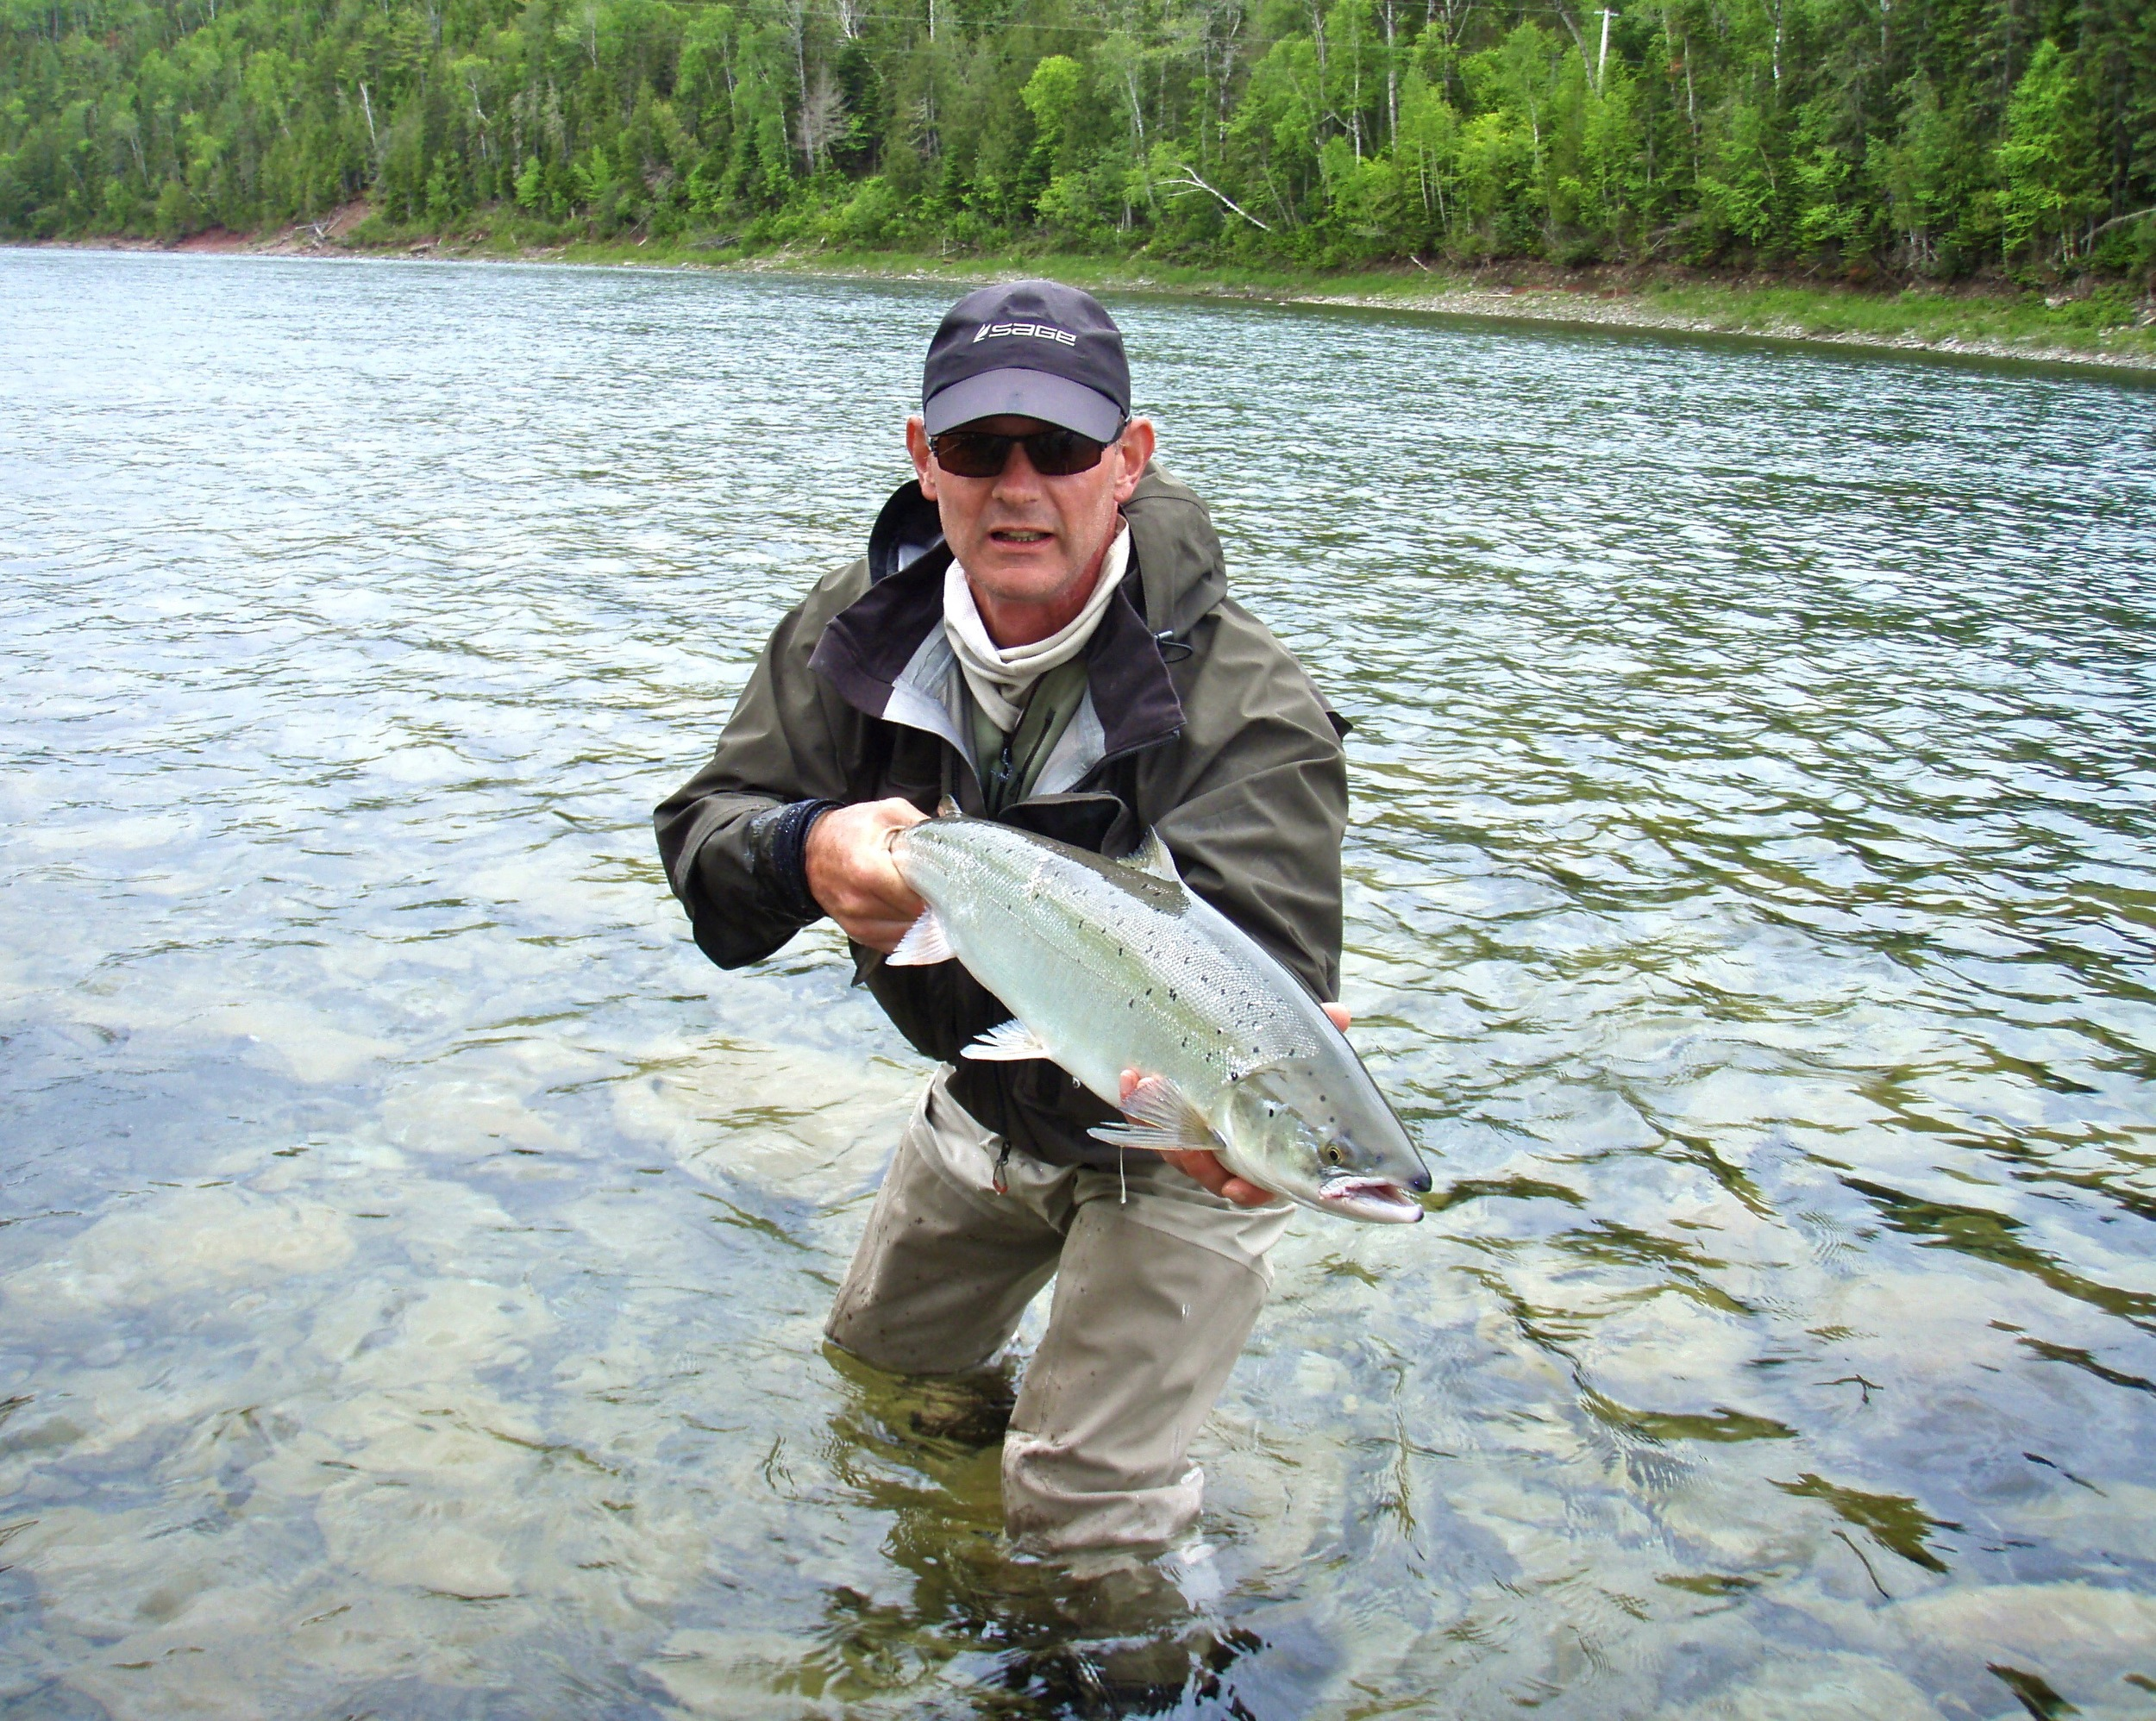 Graham Green from Halifax owns the Fishing Fever store, he sure knows how to get it done!